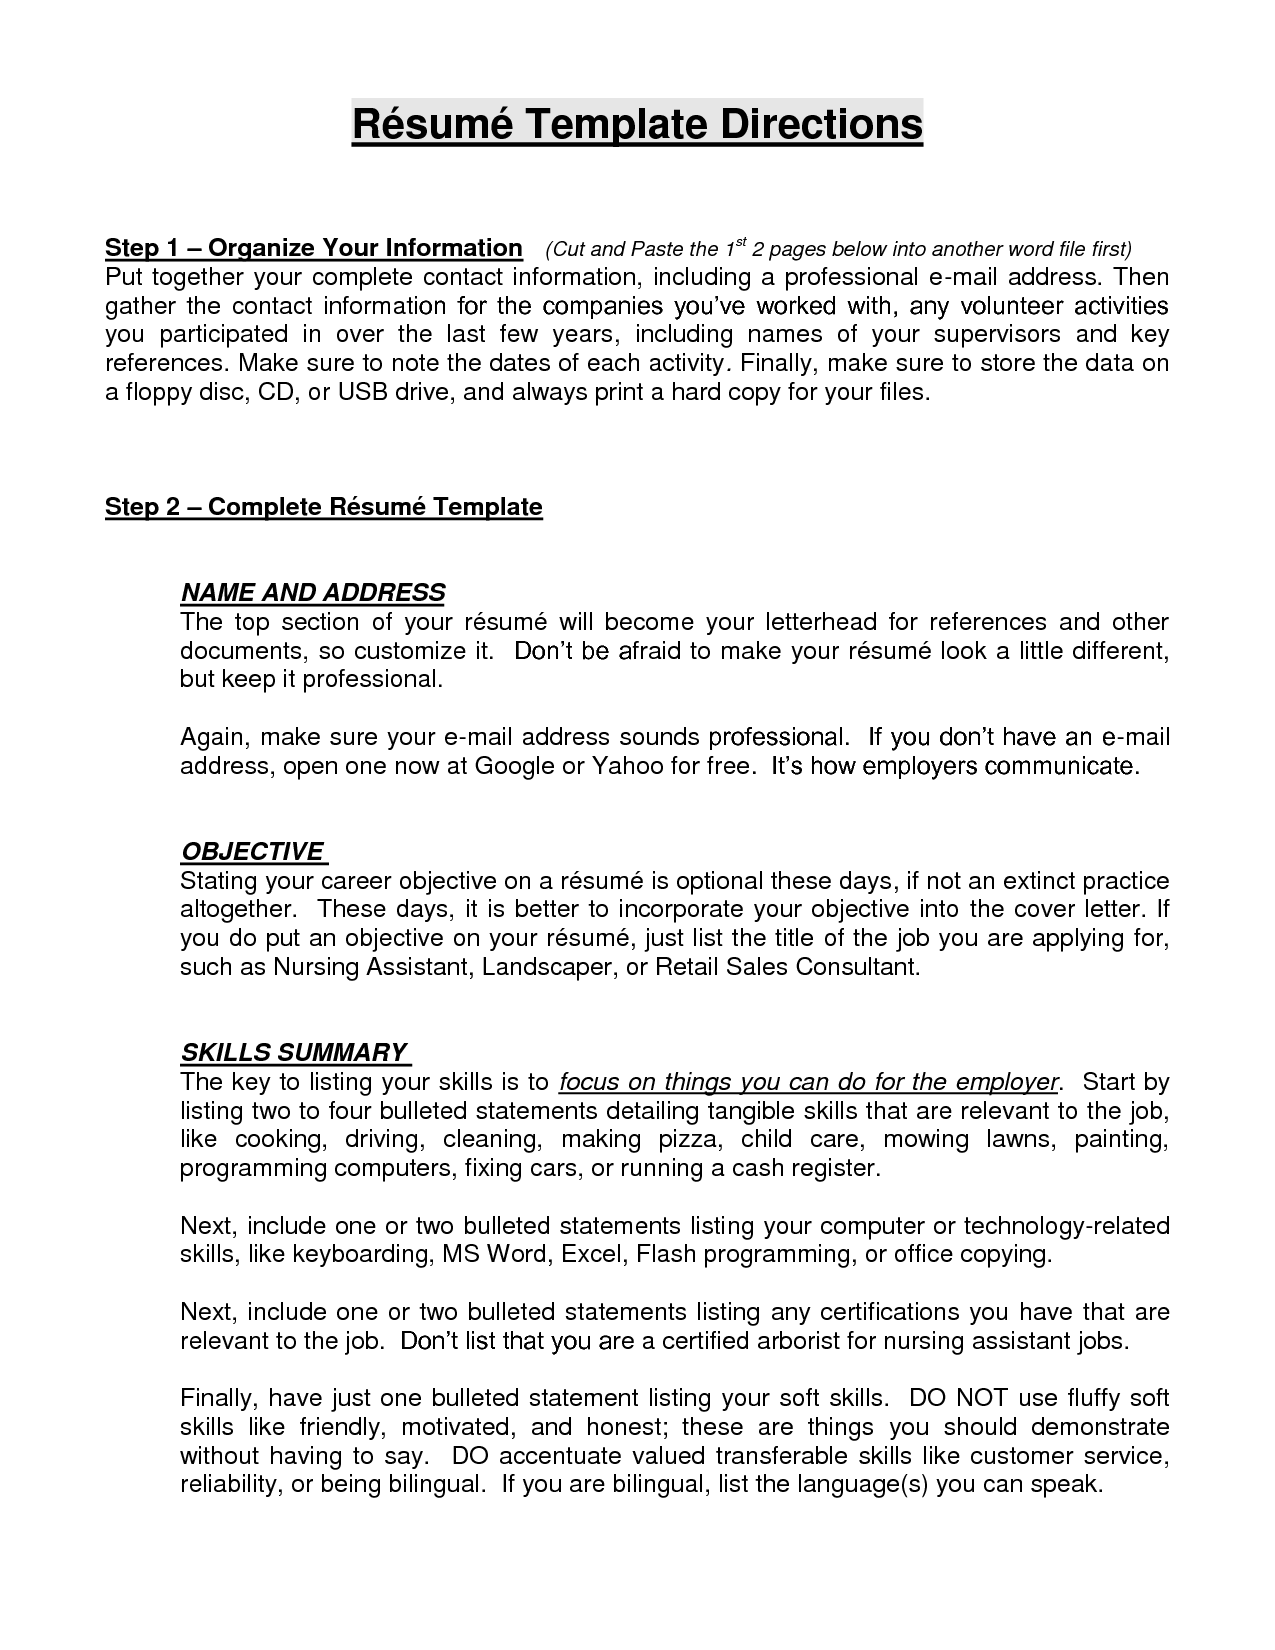 objective and skills resume objective statement great resume objective statements examples - Resume Objective Statements